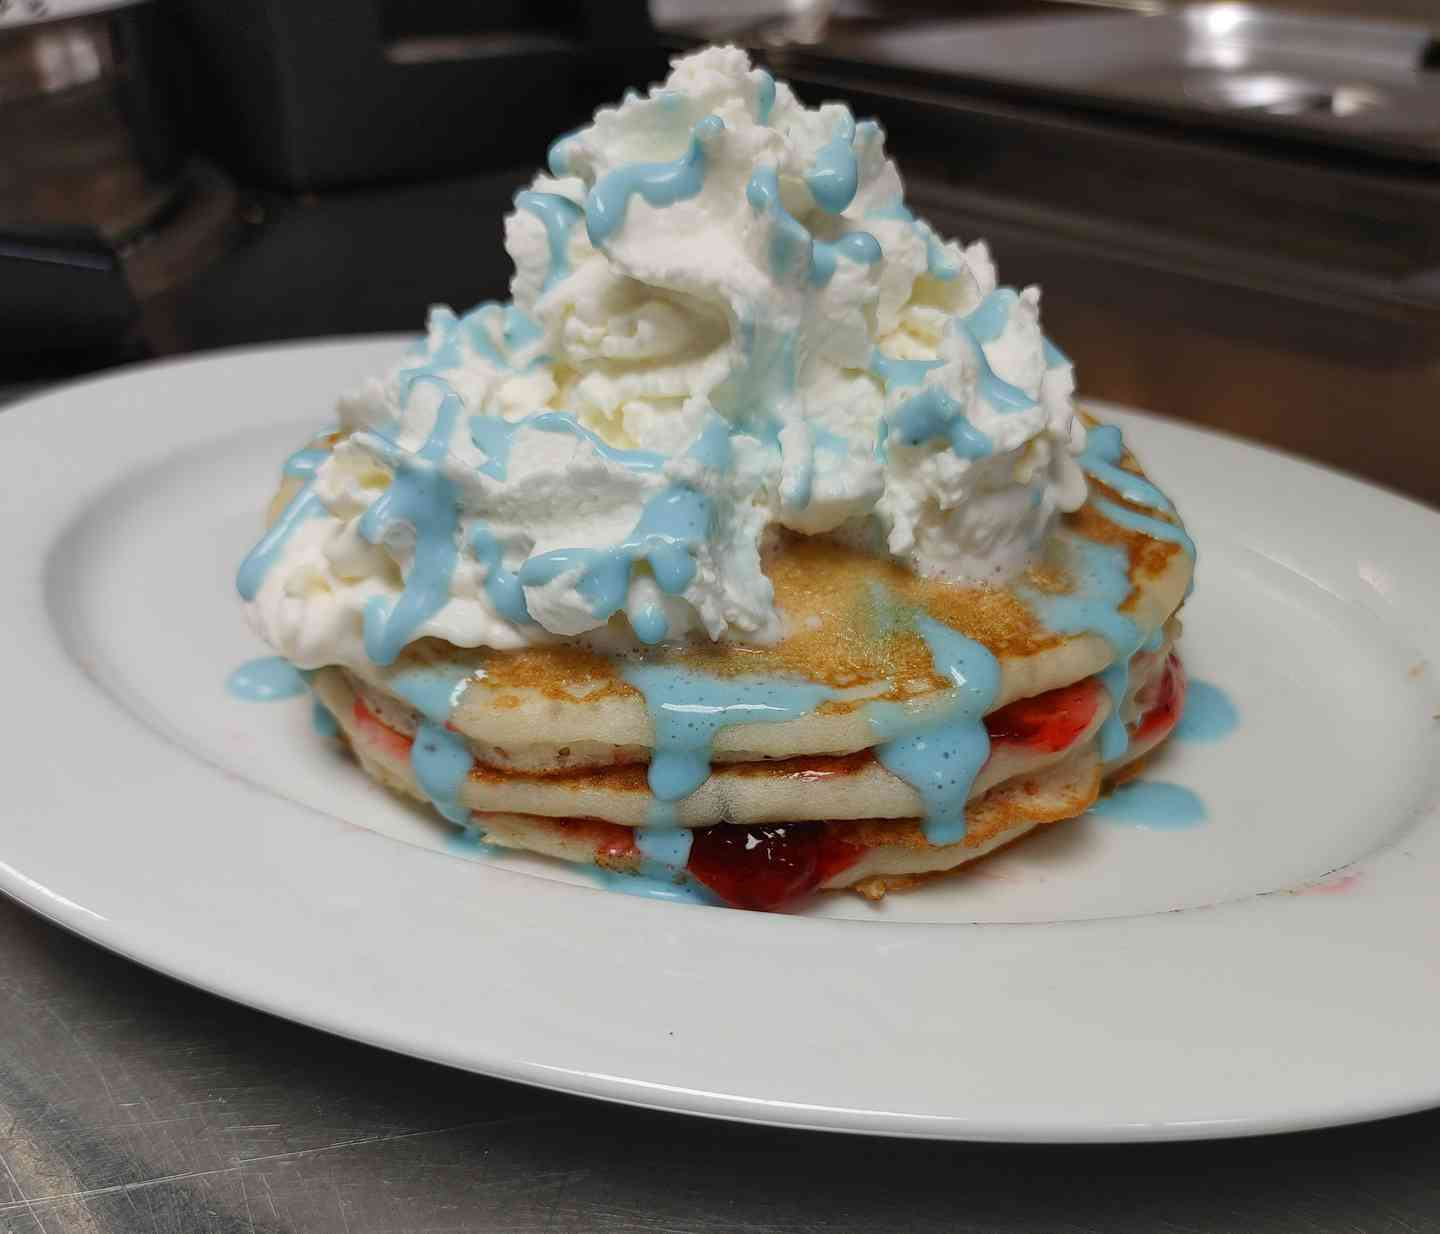 Featured: Strawberries N' Cream Pancakes or Crepes